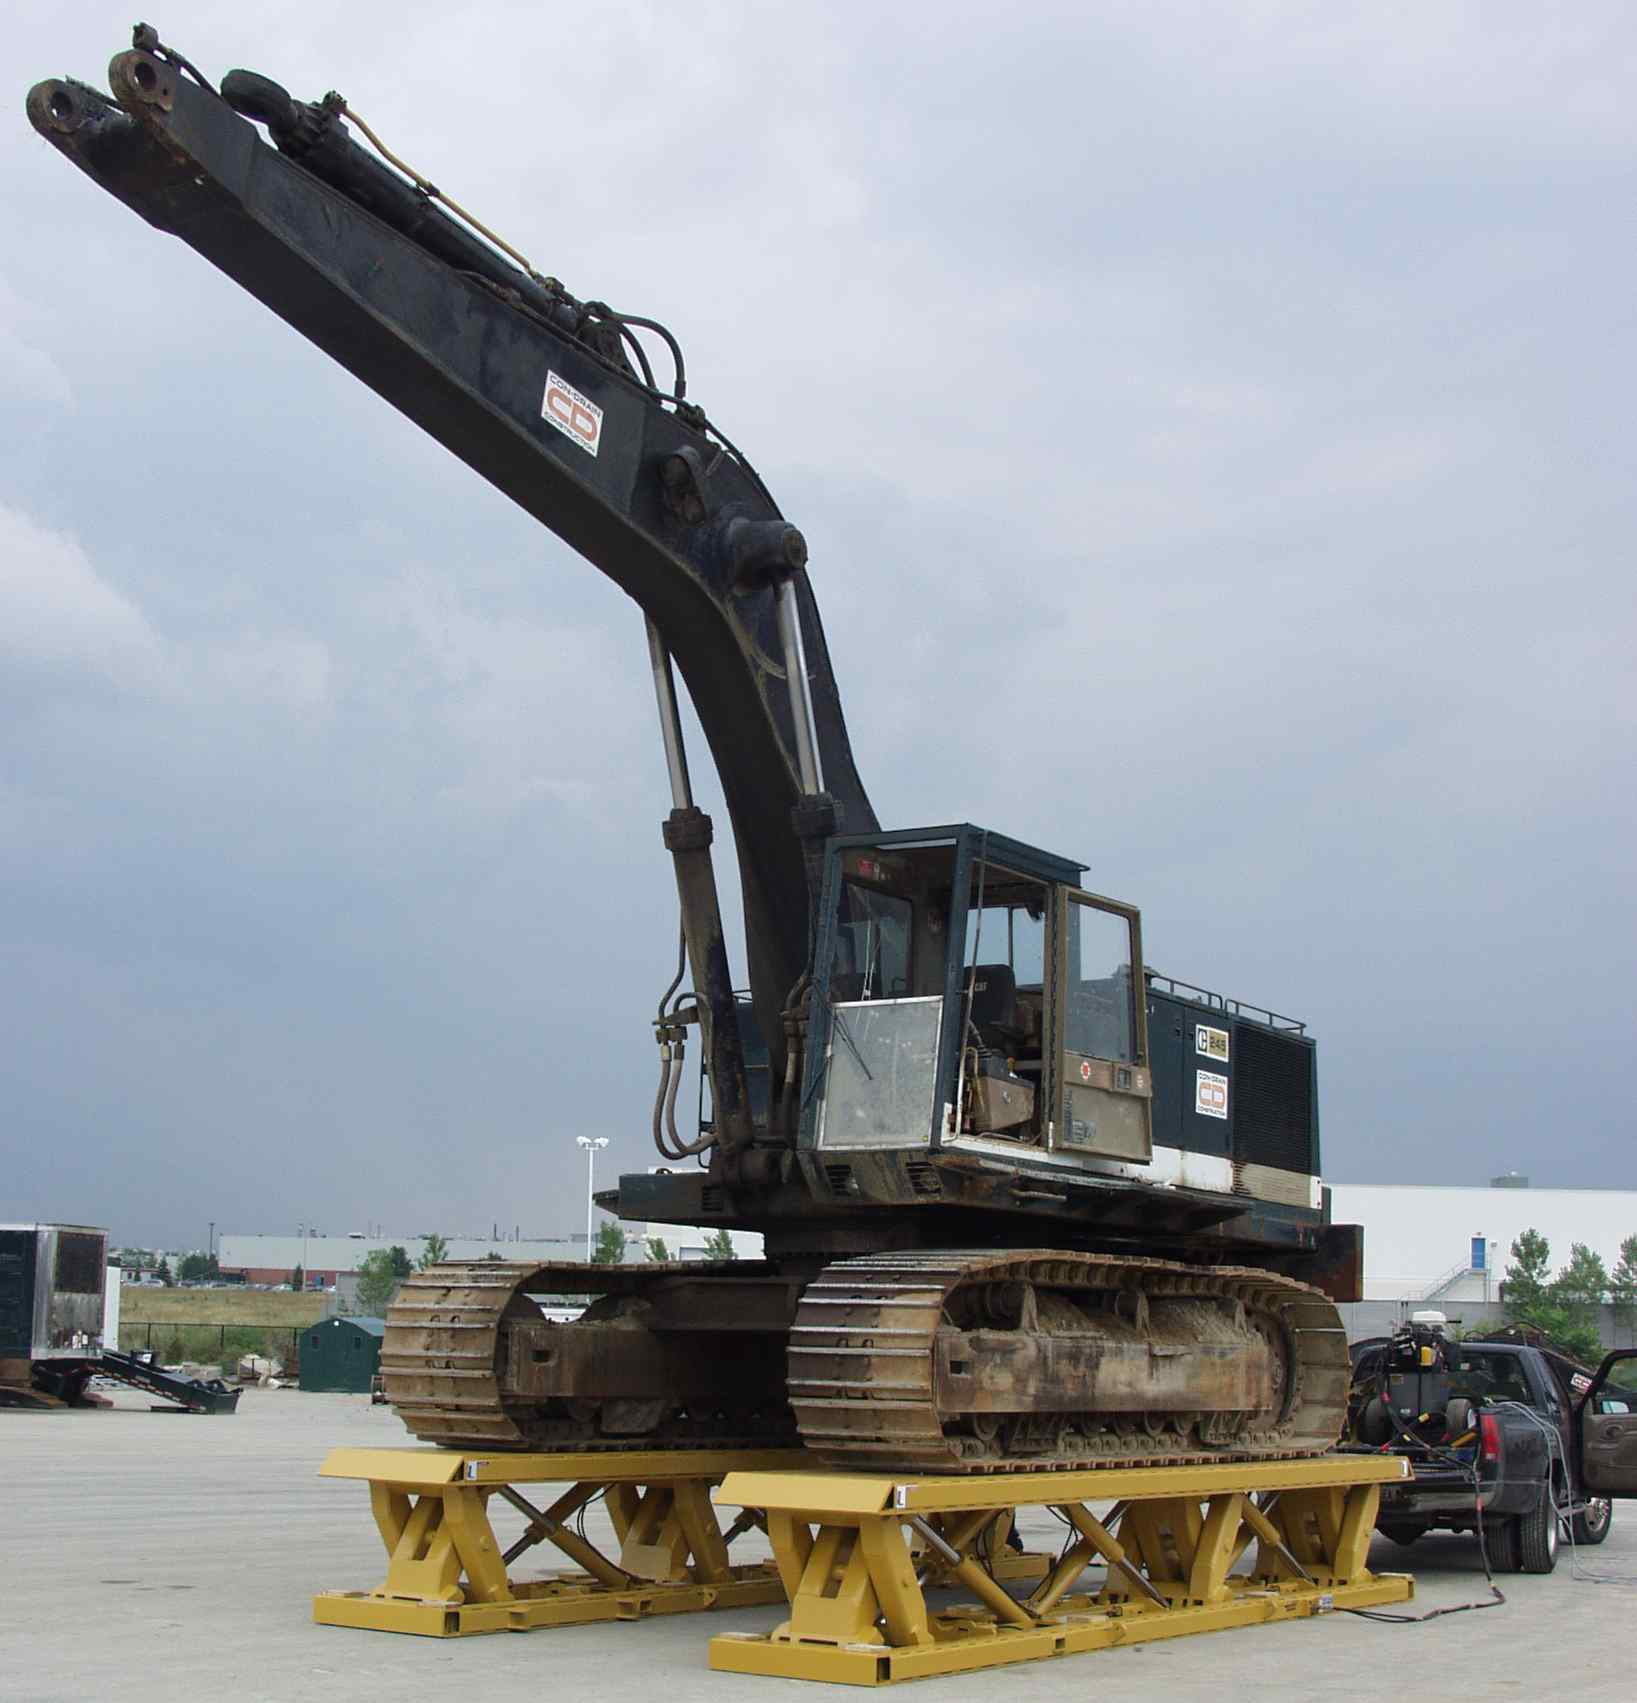 80 Ton Portable Jack for Military Applications